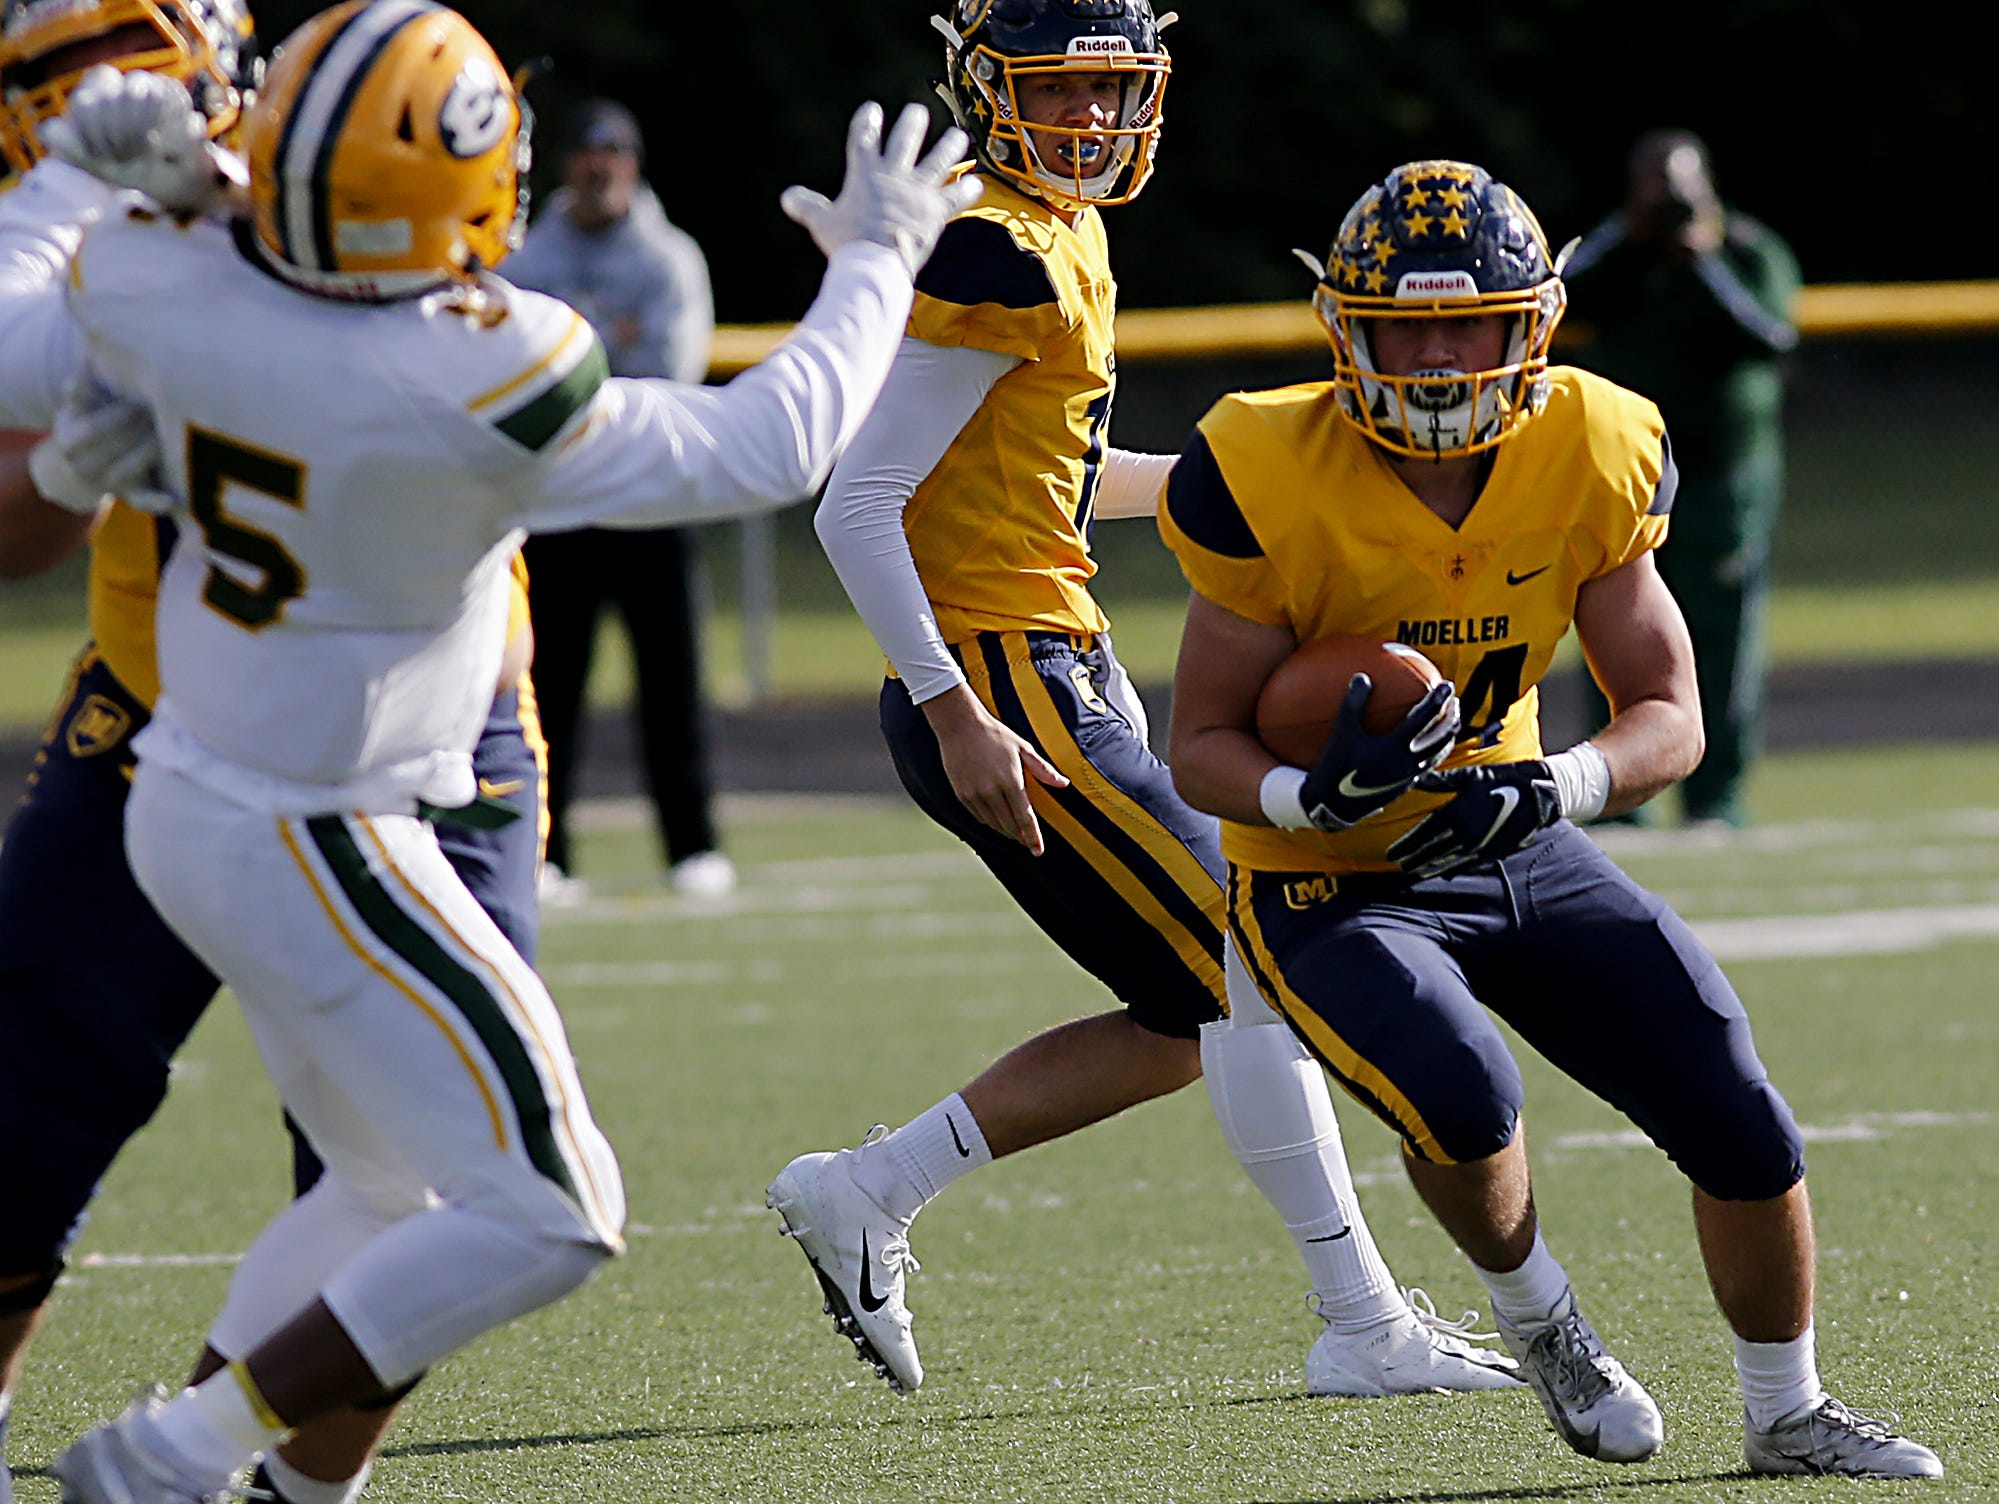 Moeller running back Thomas Rotello carries the ball against Lakewood St. Edward during their game at Lockland Saturday, Oct. 20, 2018.